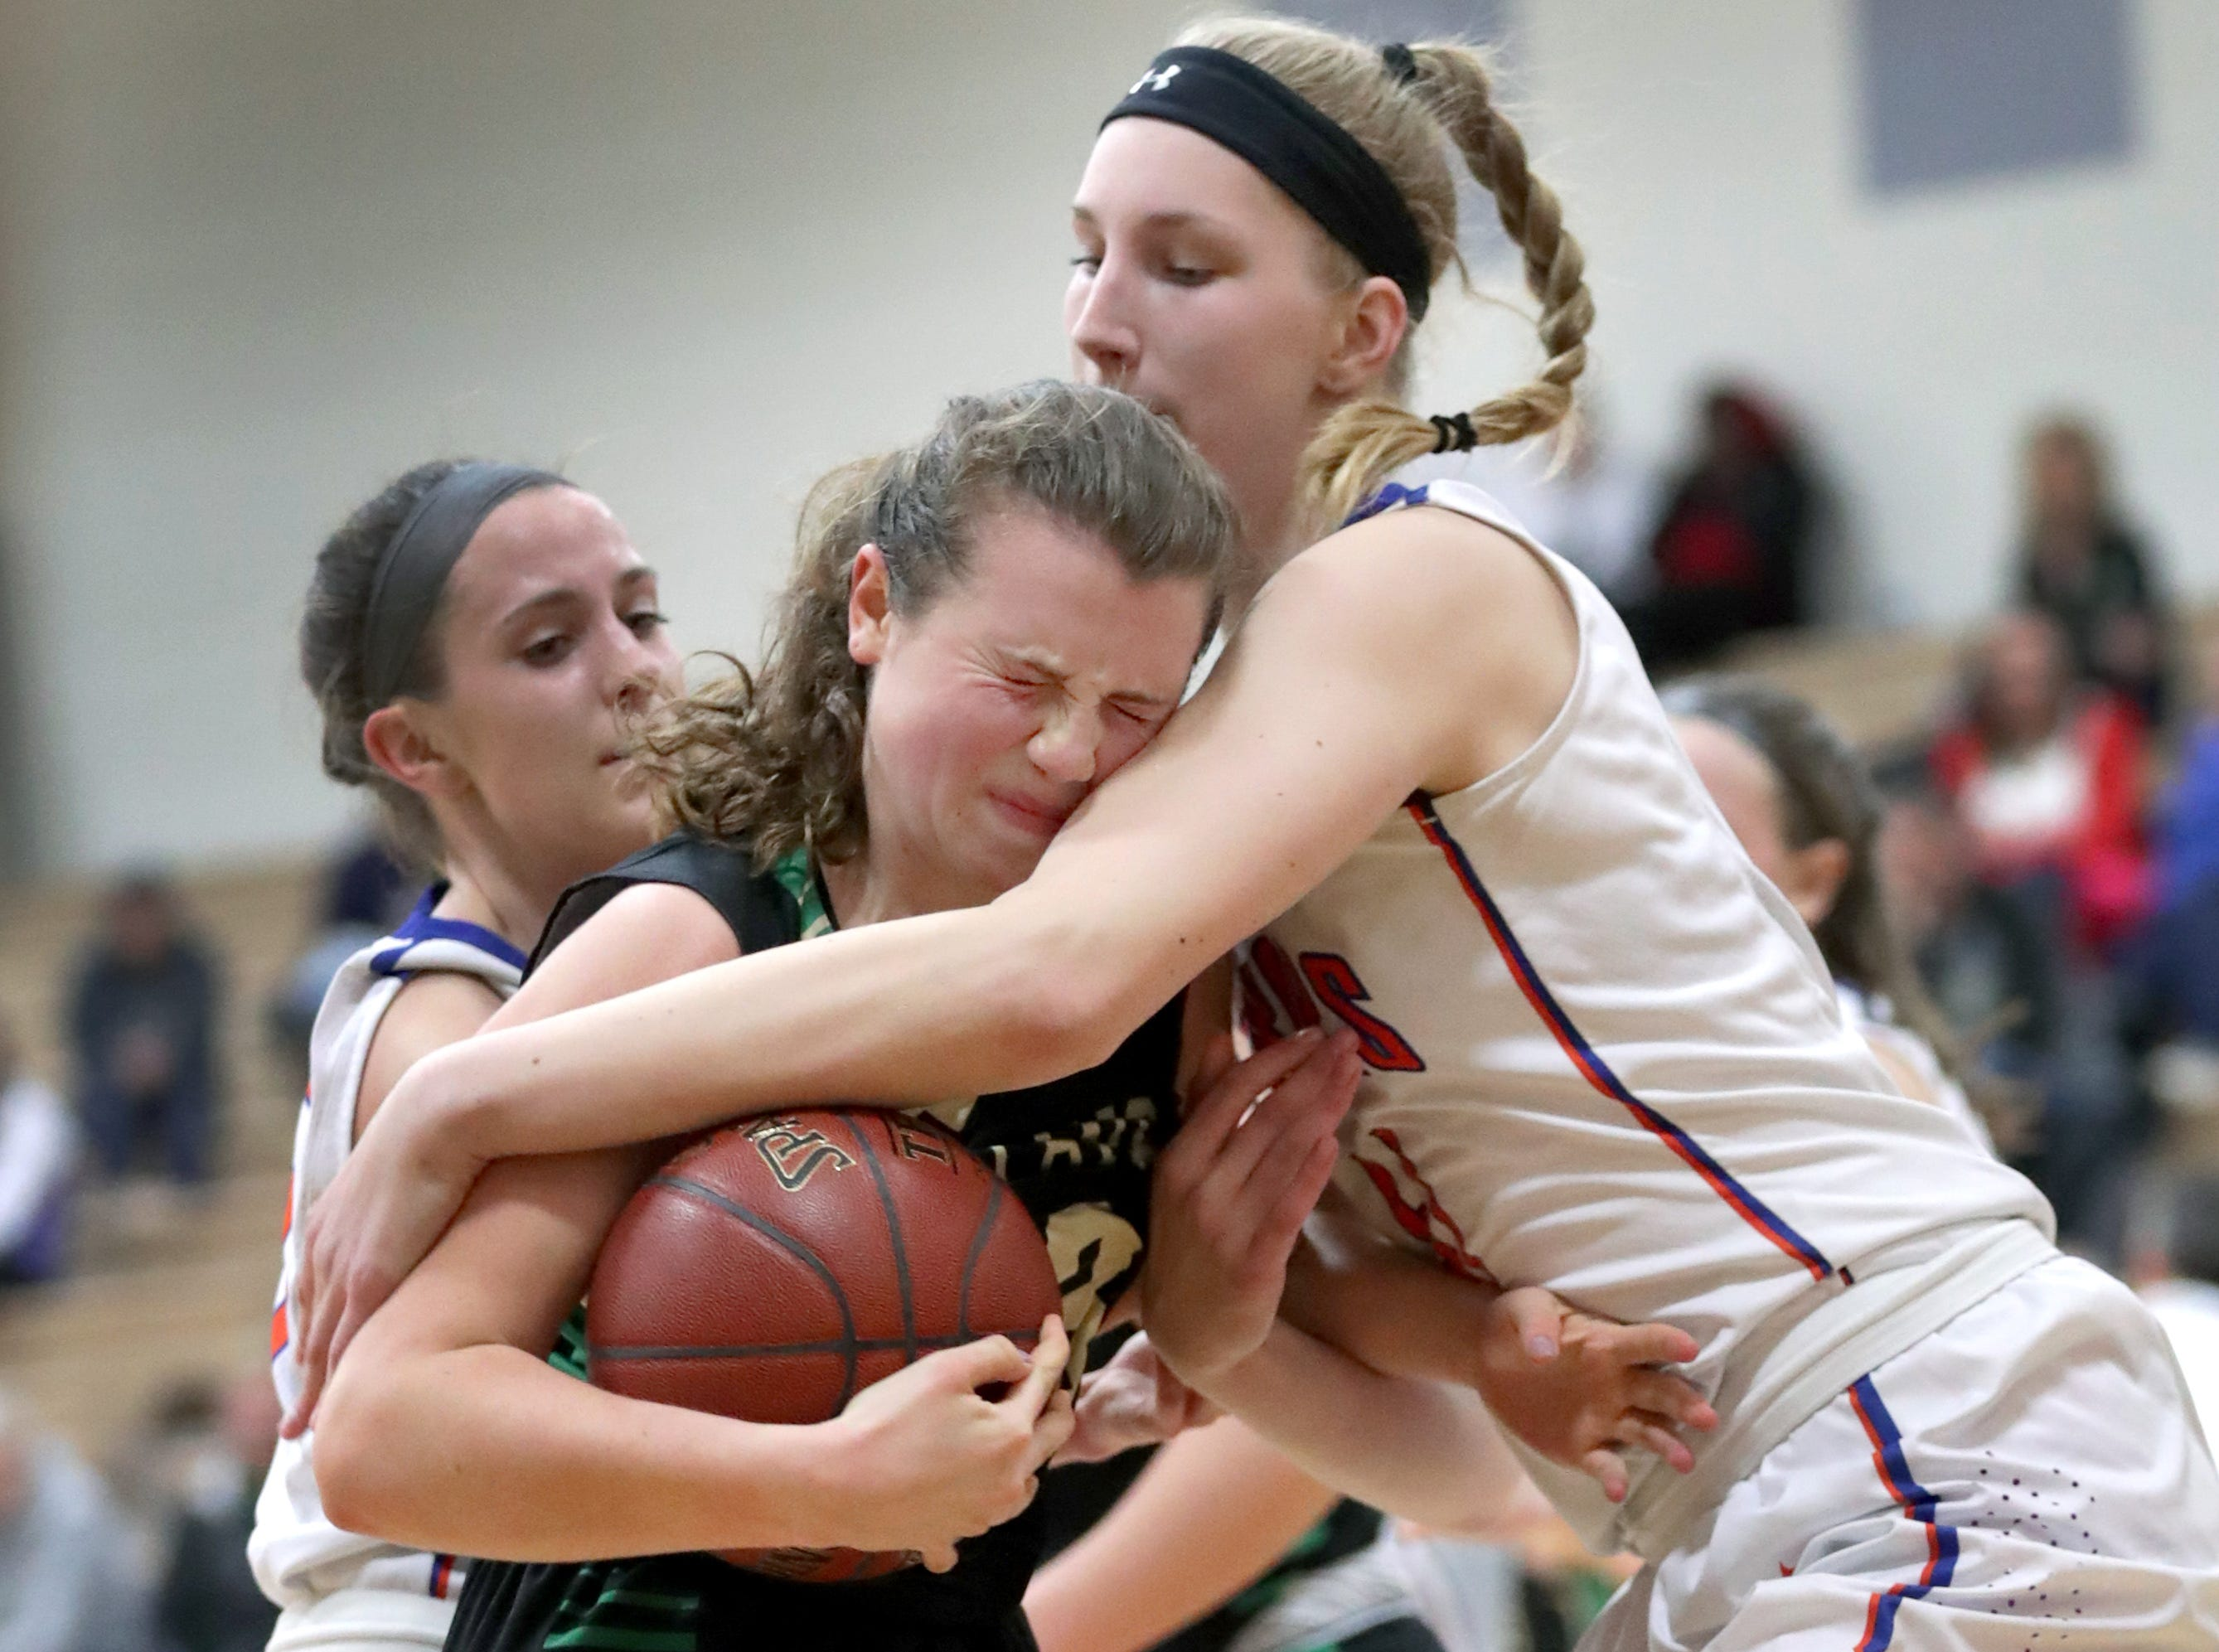 Appleton West High School's #41 Taylor Lauterbach, right, against Oshkosh North High School's #23 Elle Lieder during their girls baketball game on Thursday, February 14, 2019, in Appleton, Wis. Oshkosh defeated Appleton 51 to 46.Wm. Glasheen/USA TODAY NETWORK-Wisconsin.